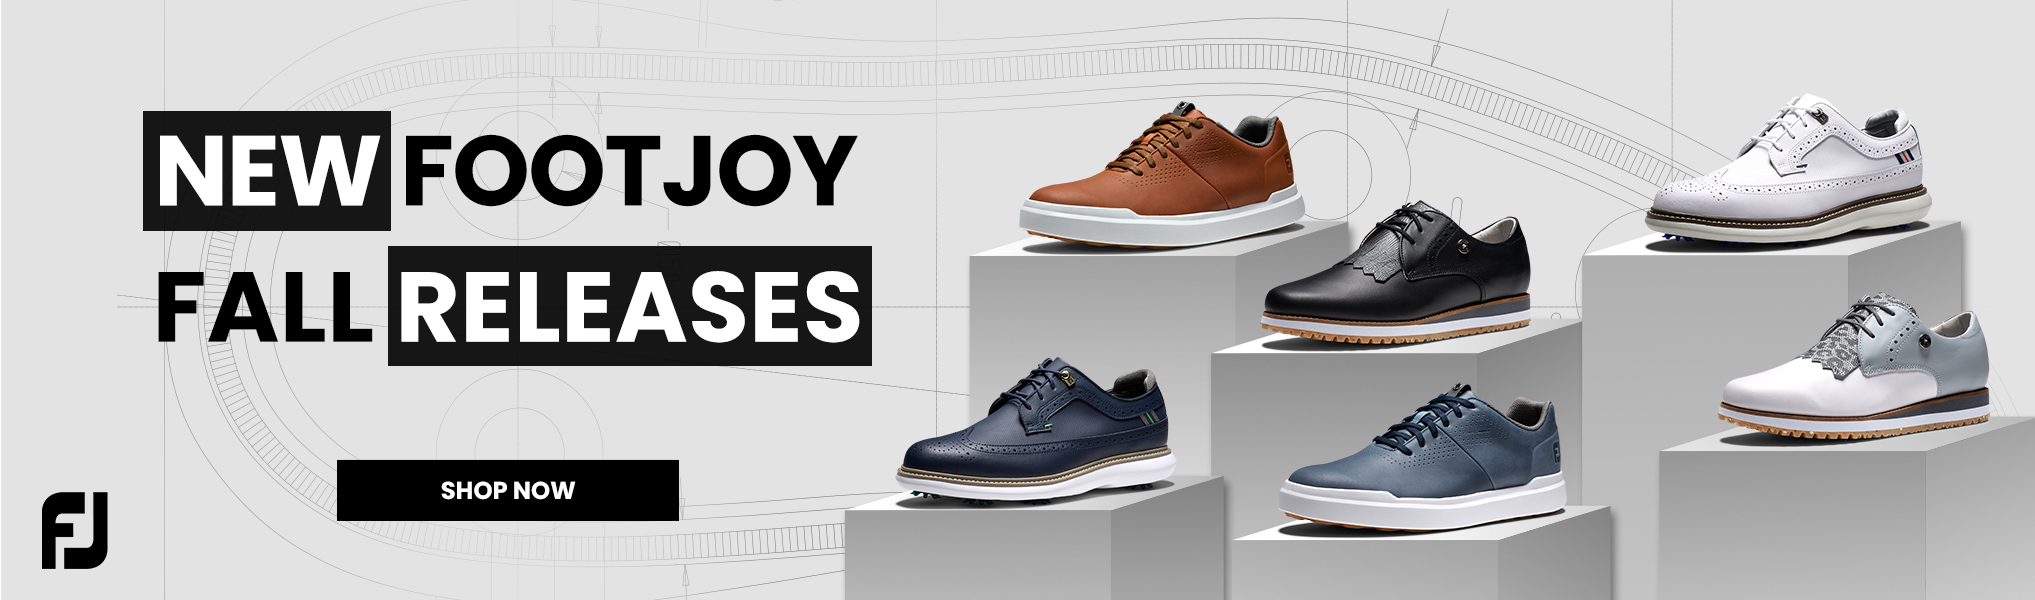 Footjoy fall launches